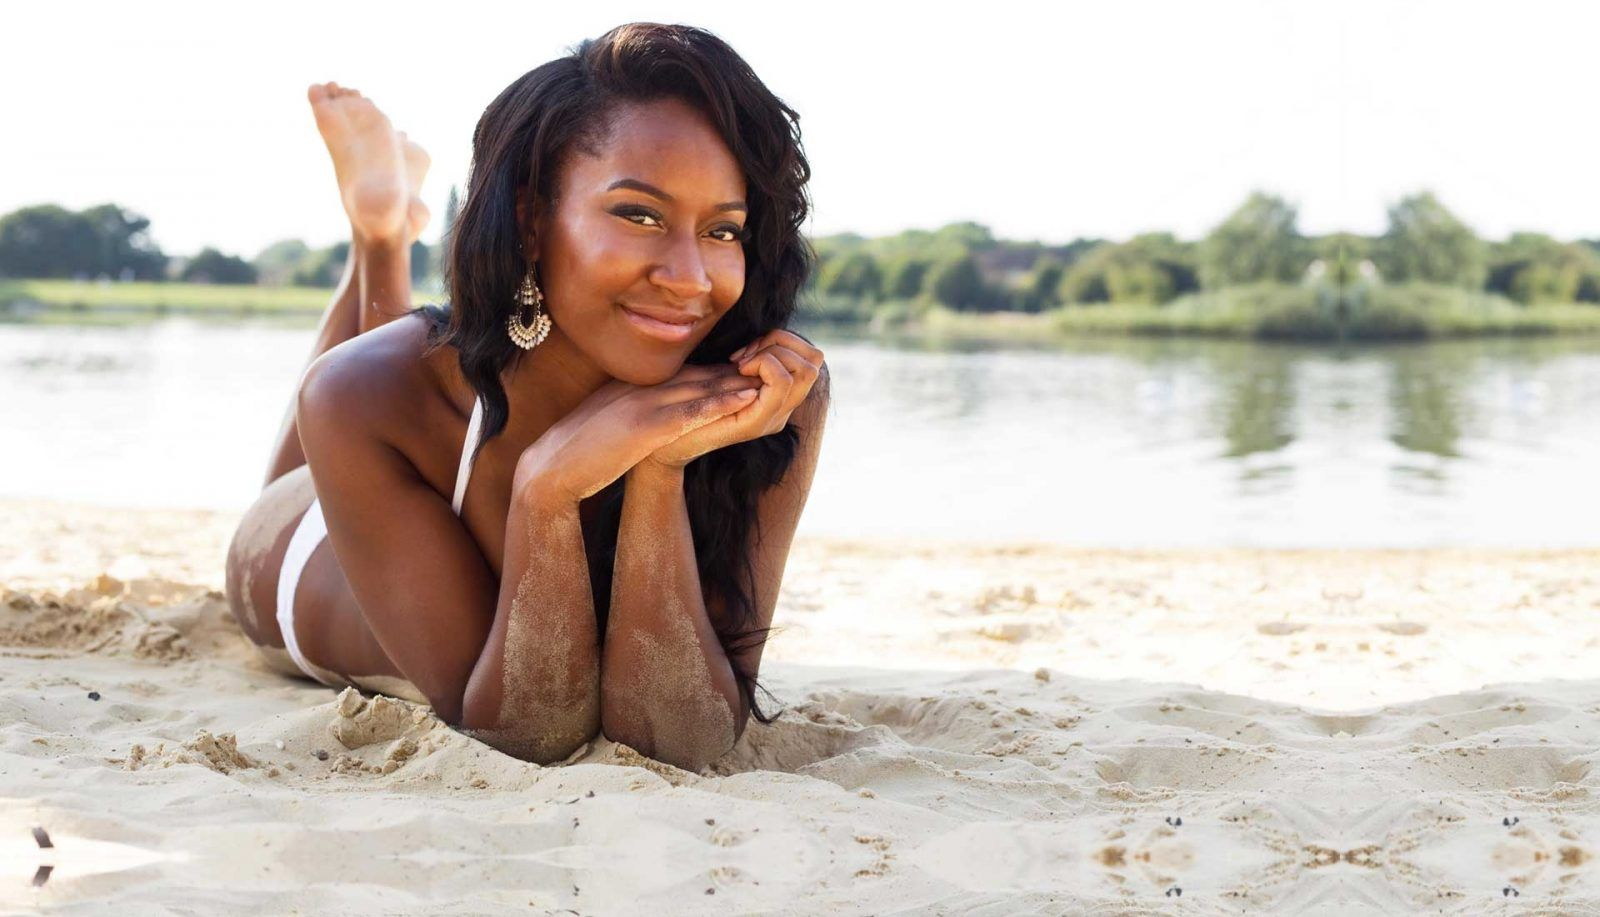 Black woman on beach after swimming with natural hair